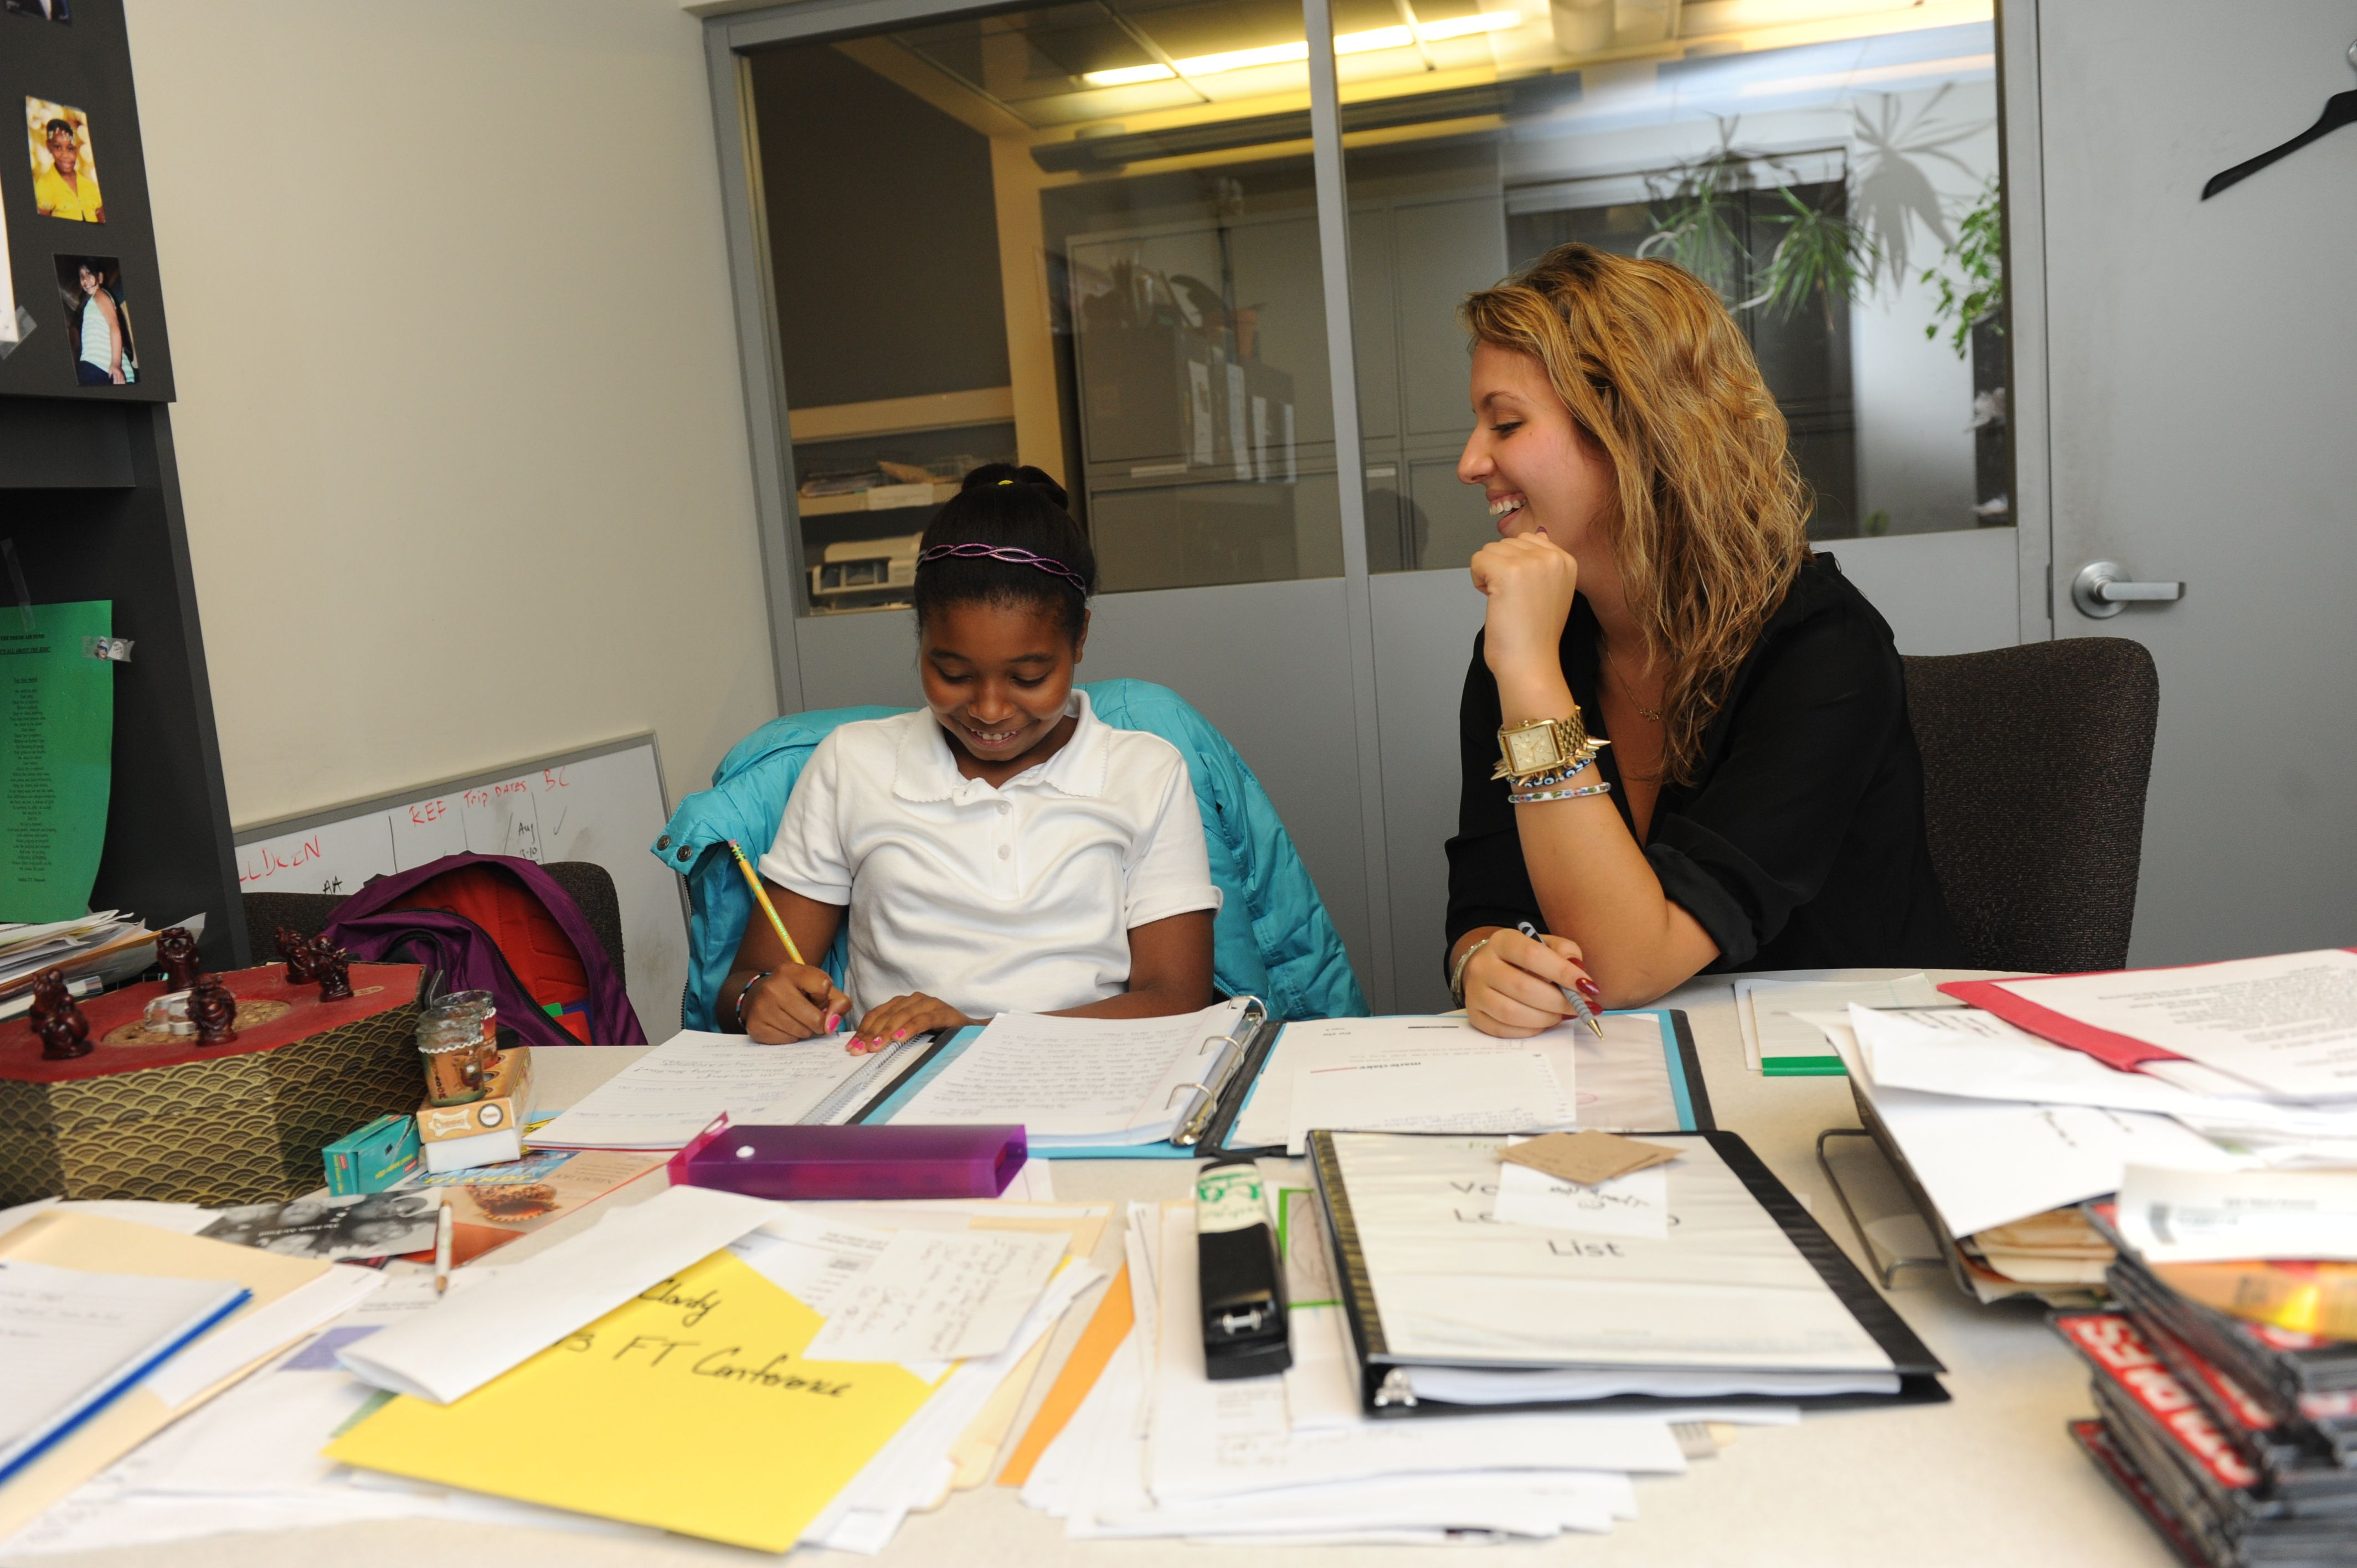 All tutoring at The Fresh Air Fund's NYC office is